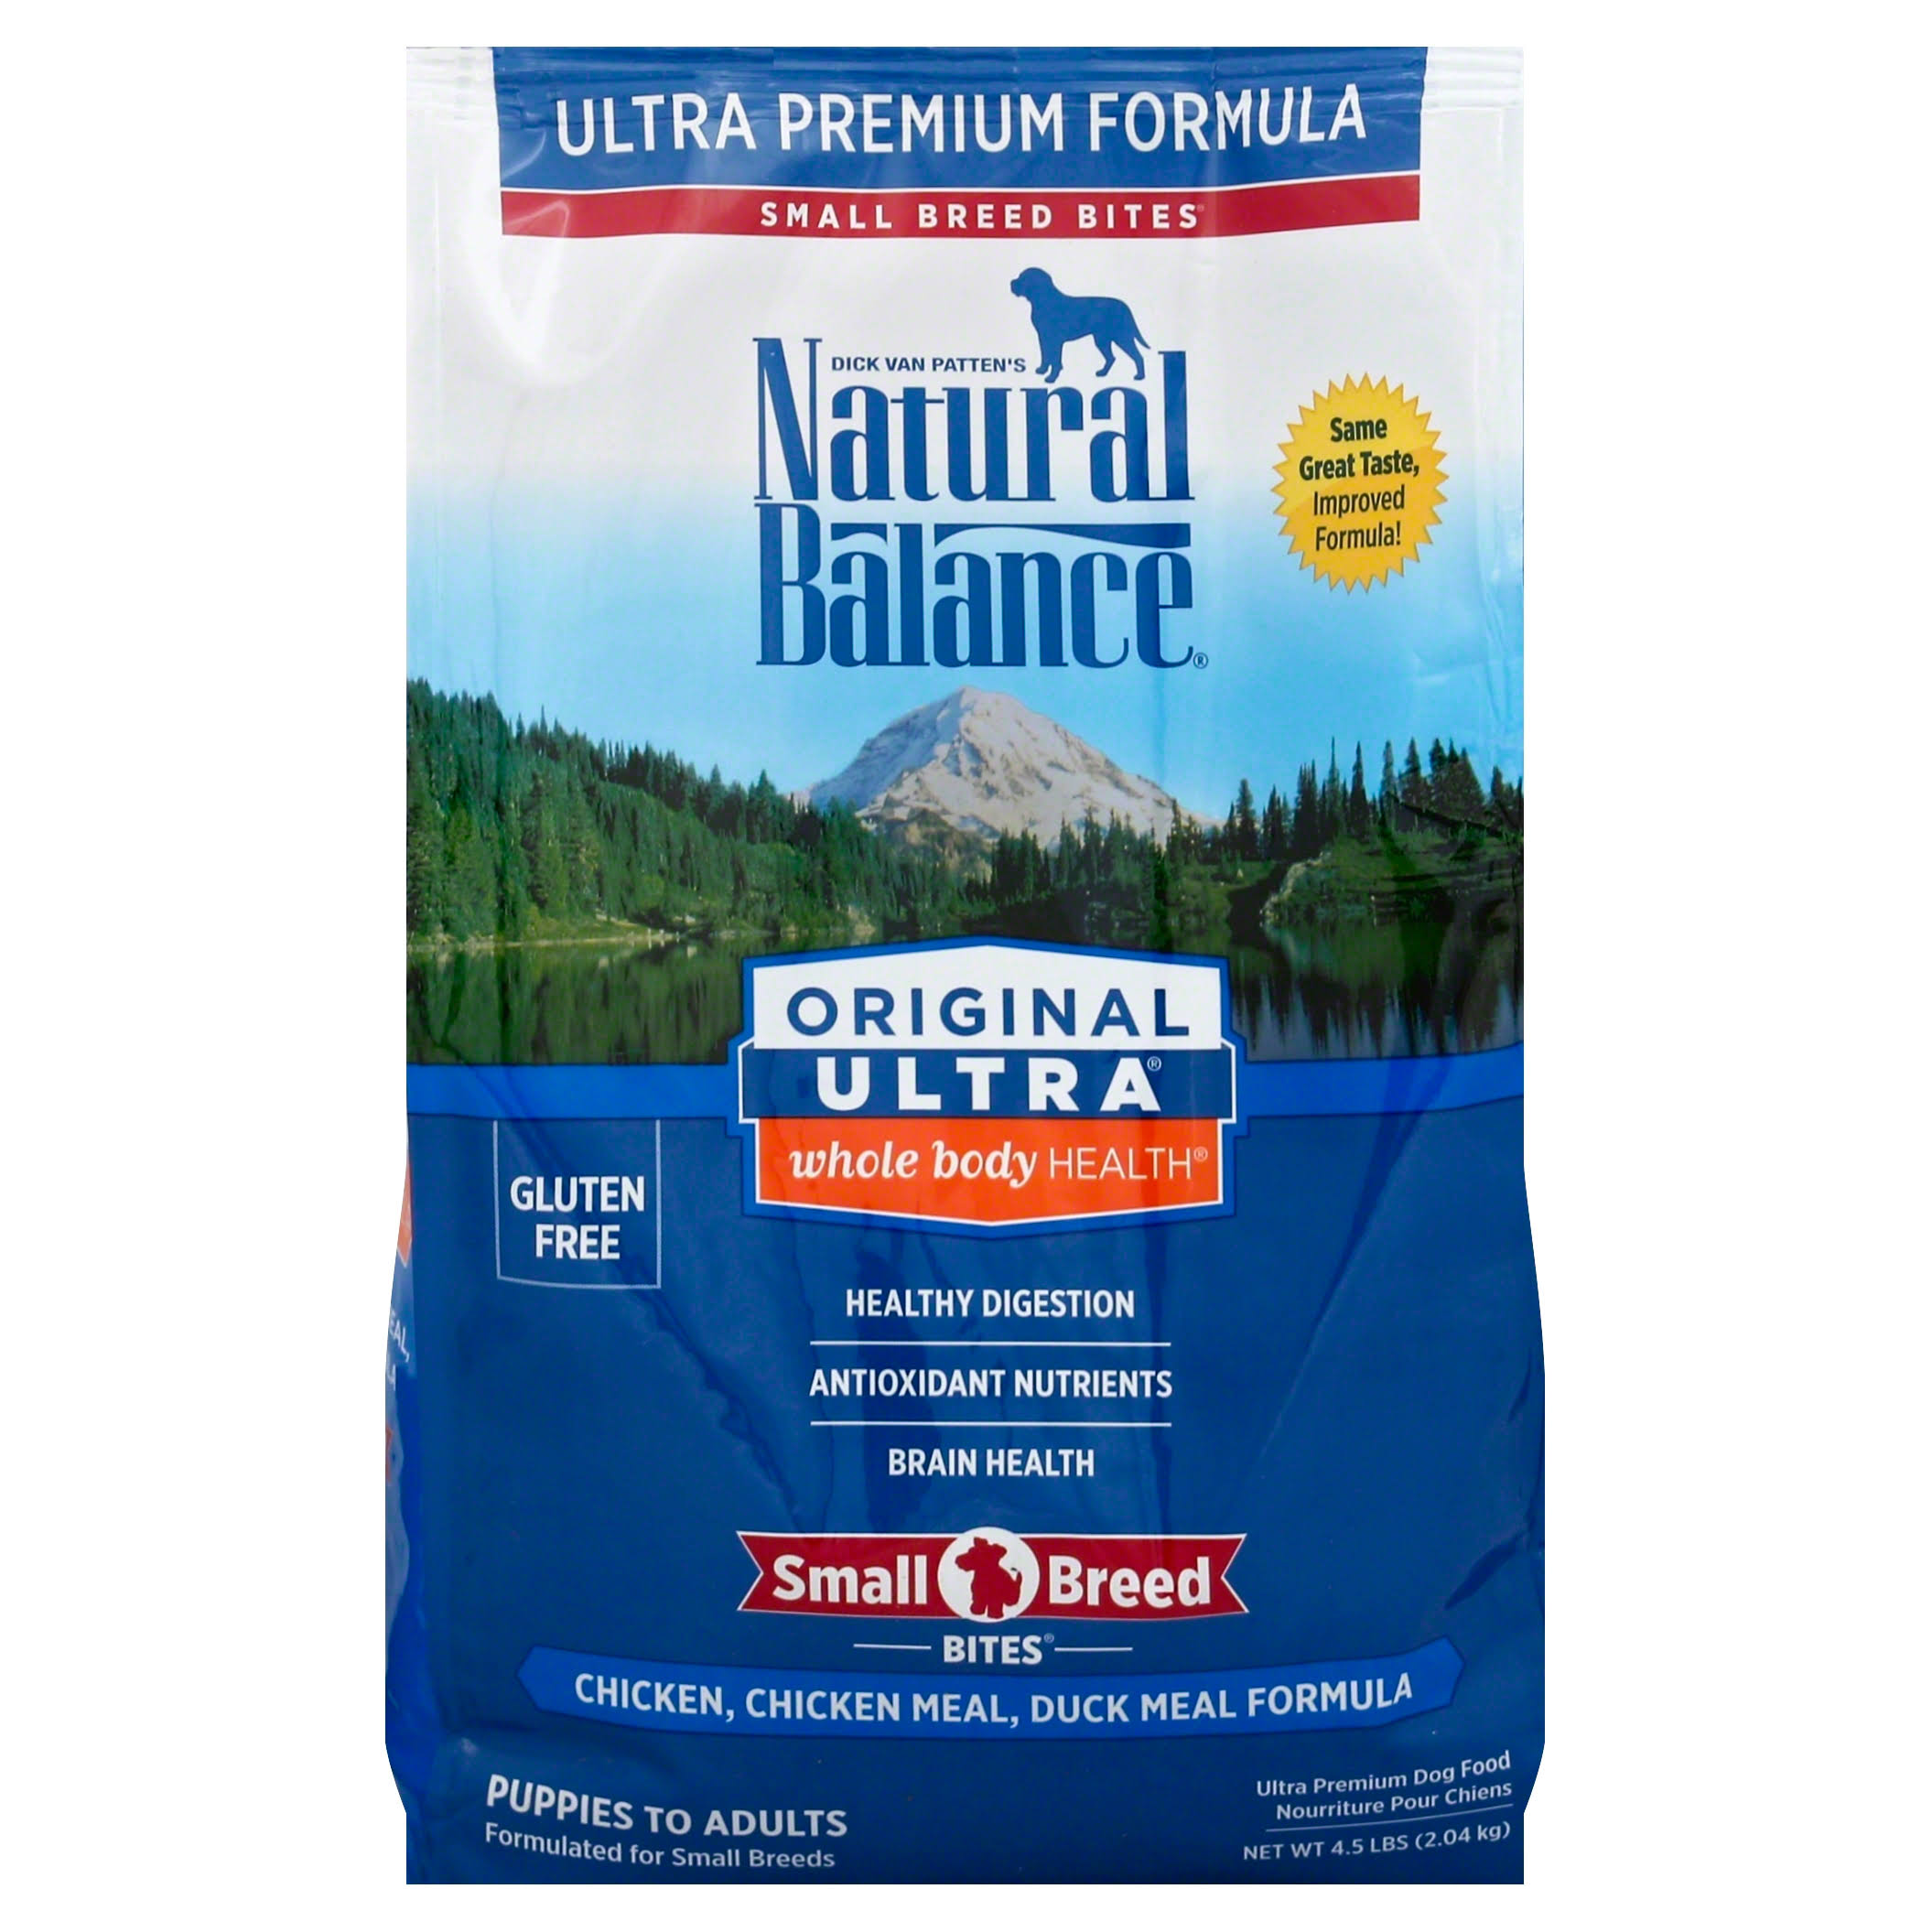 Dick Van Patten's Natural Balance Ultra Premium Dog Food - Chicken Duck Meal Formula, 4.5lb